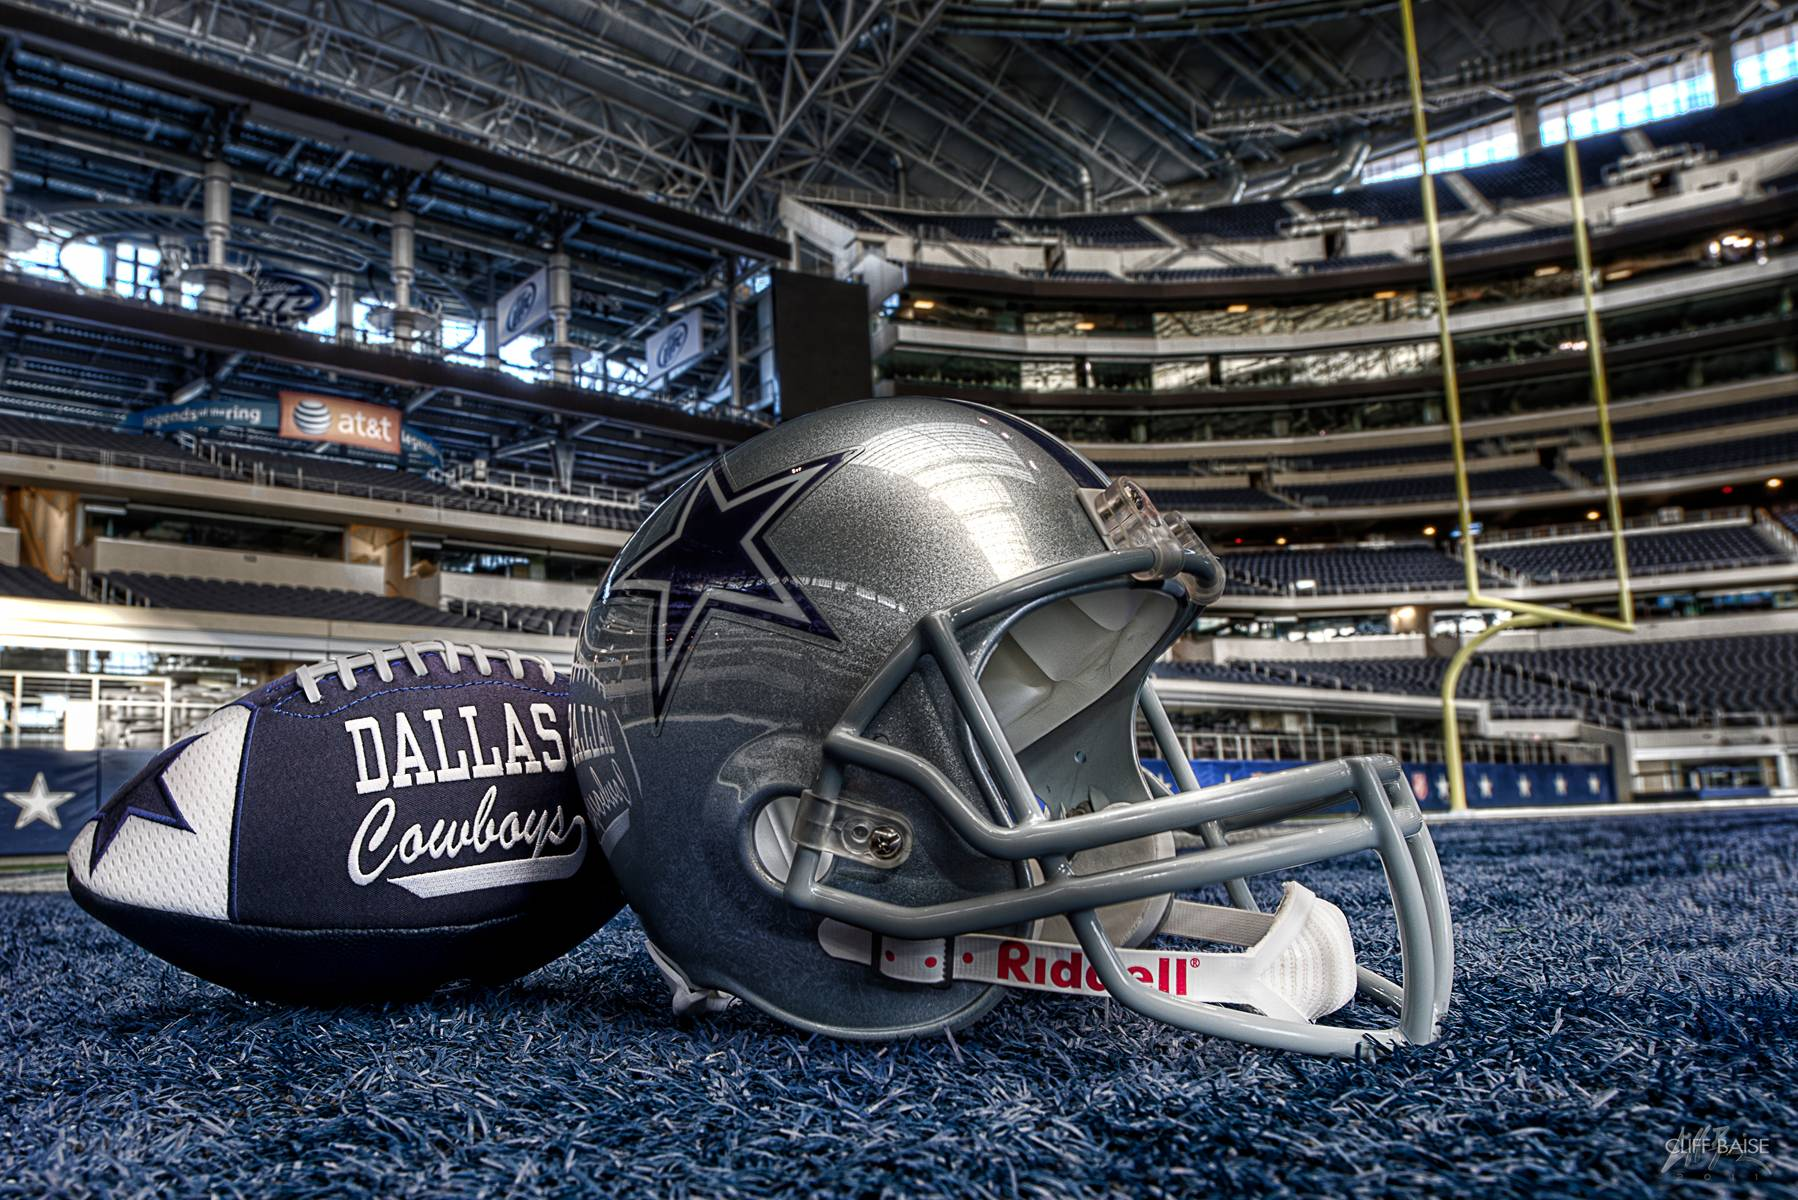 Dallas Cowboys 1080p Wallpaper